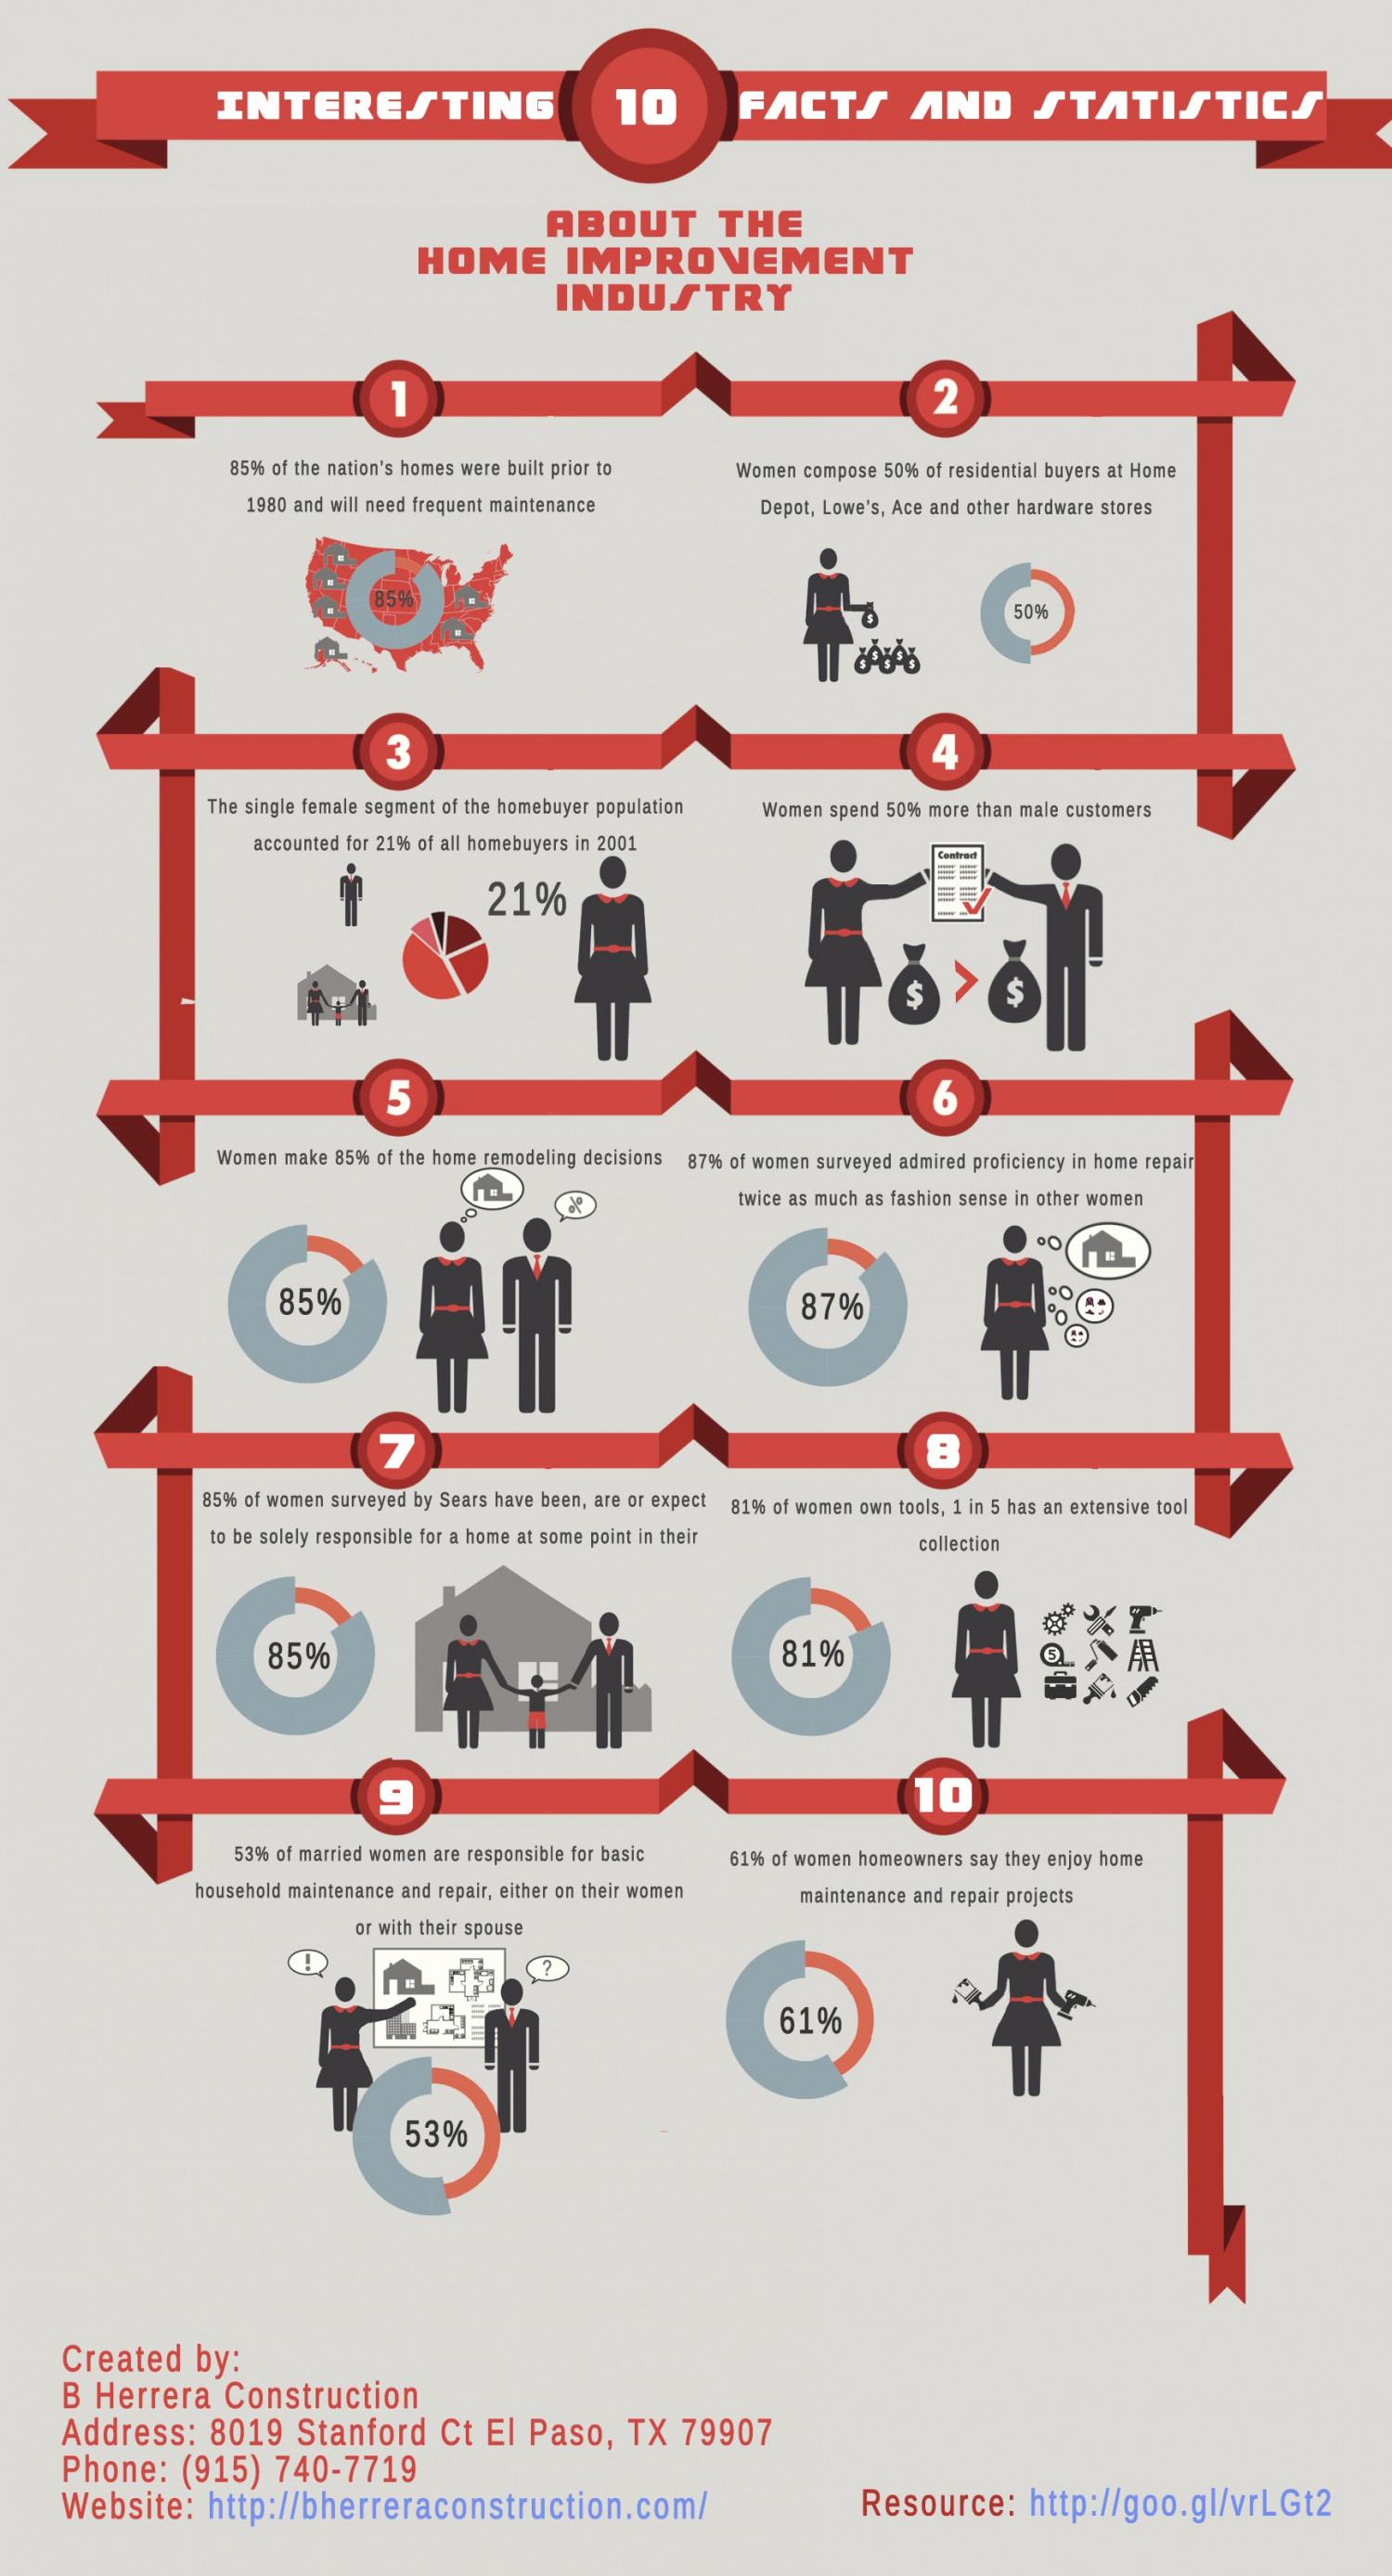 Interesting 10 Facts and Statistics About the Home Improvement Industry Infographic